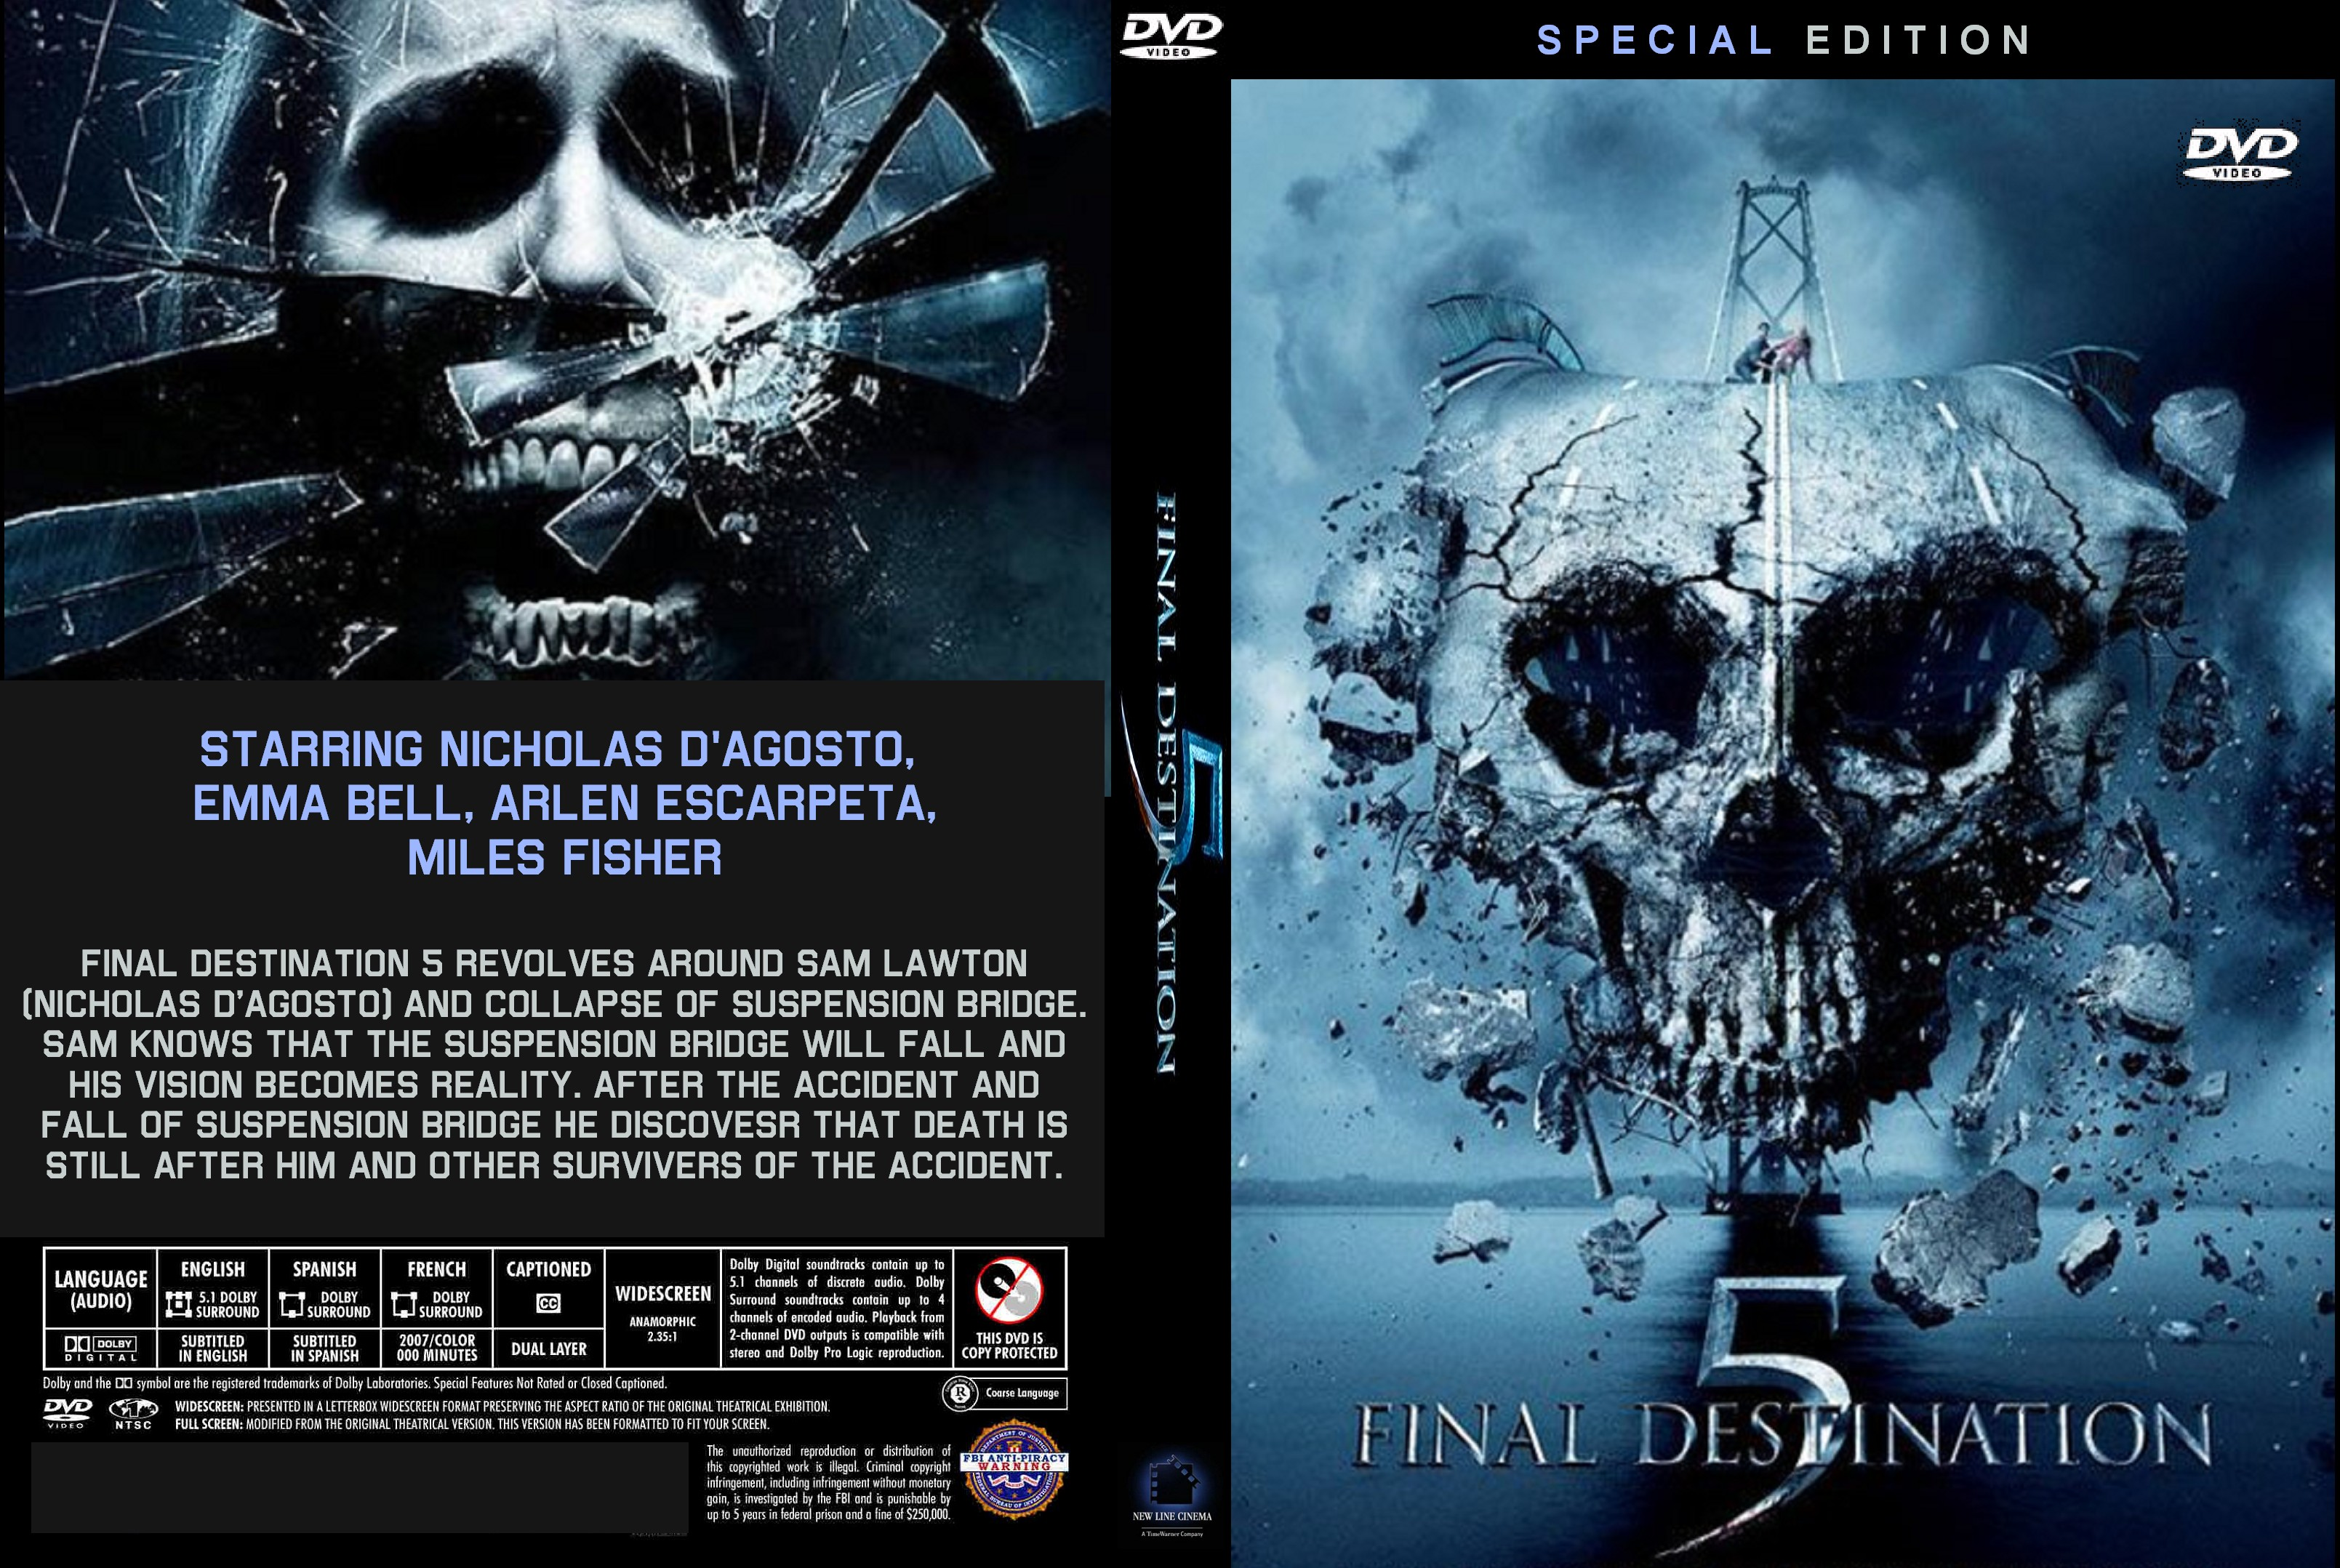 final destination 5 full movie in hindi free download 720p